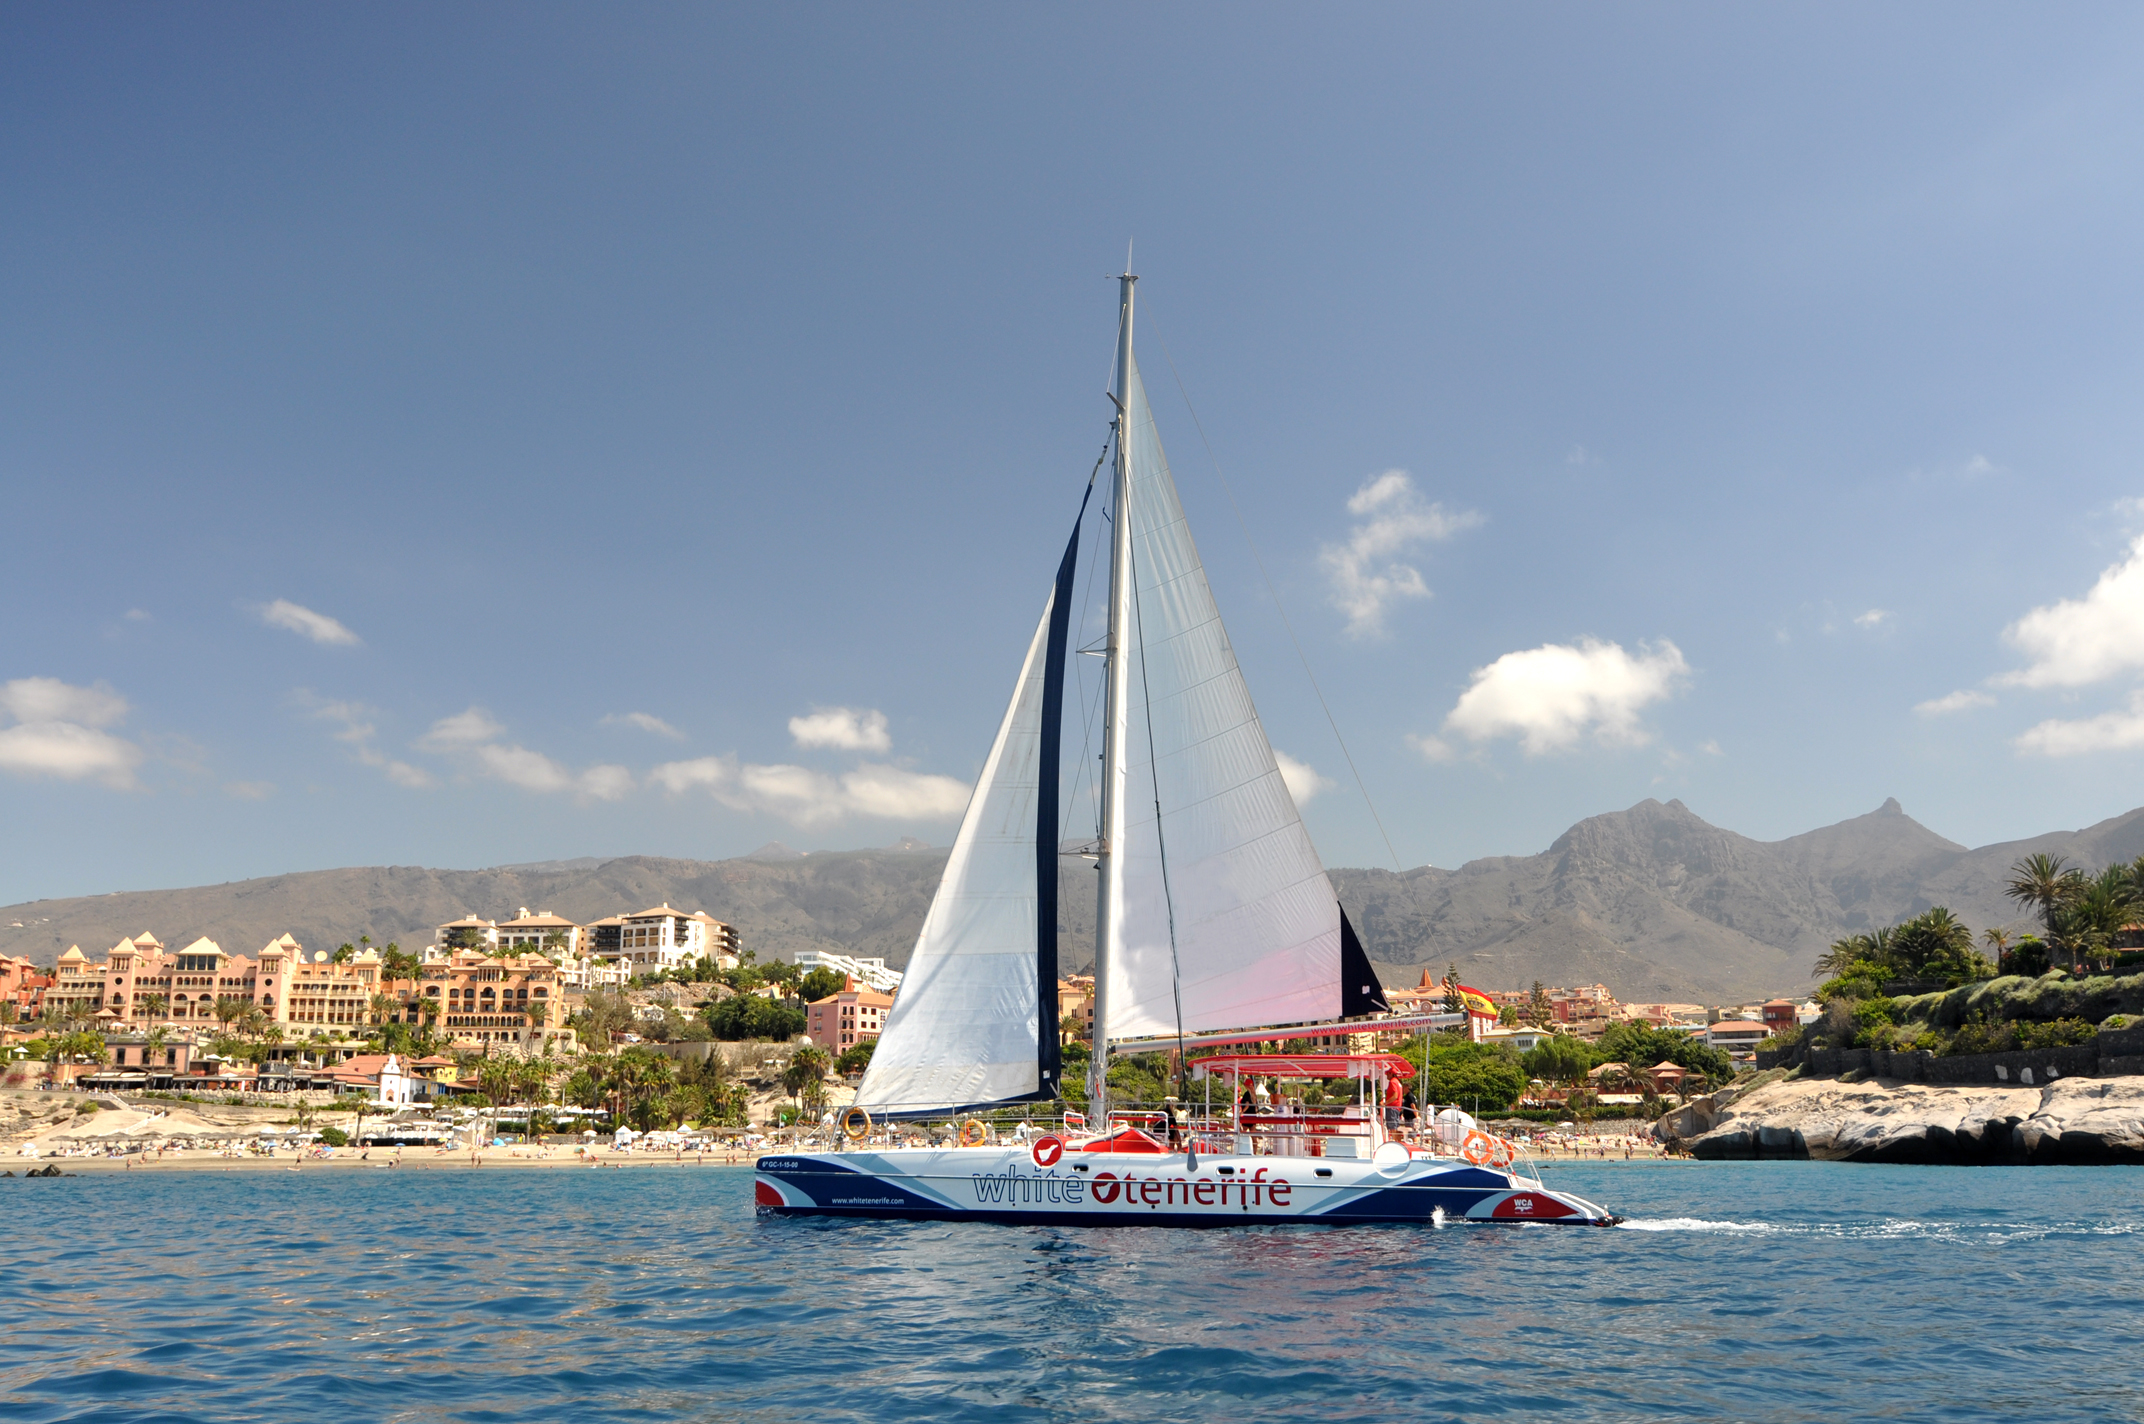 Tickets for Whale and Dolphin Watching and Listening with Catamaran